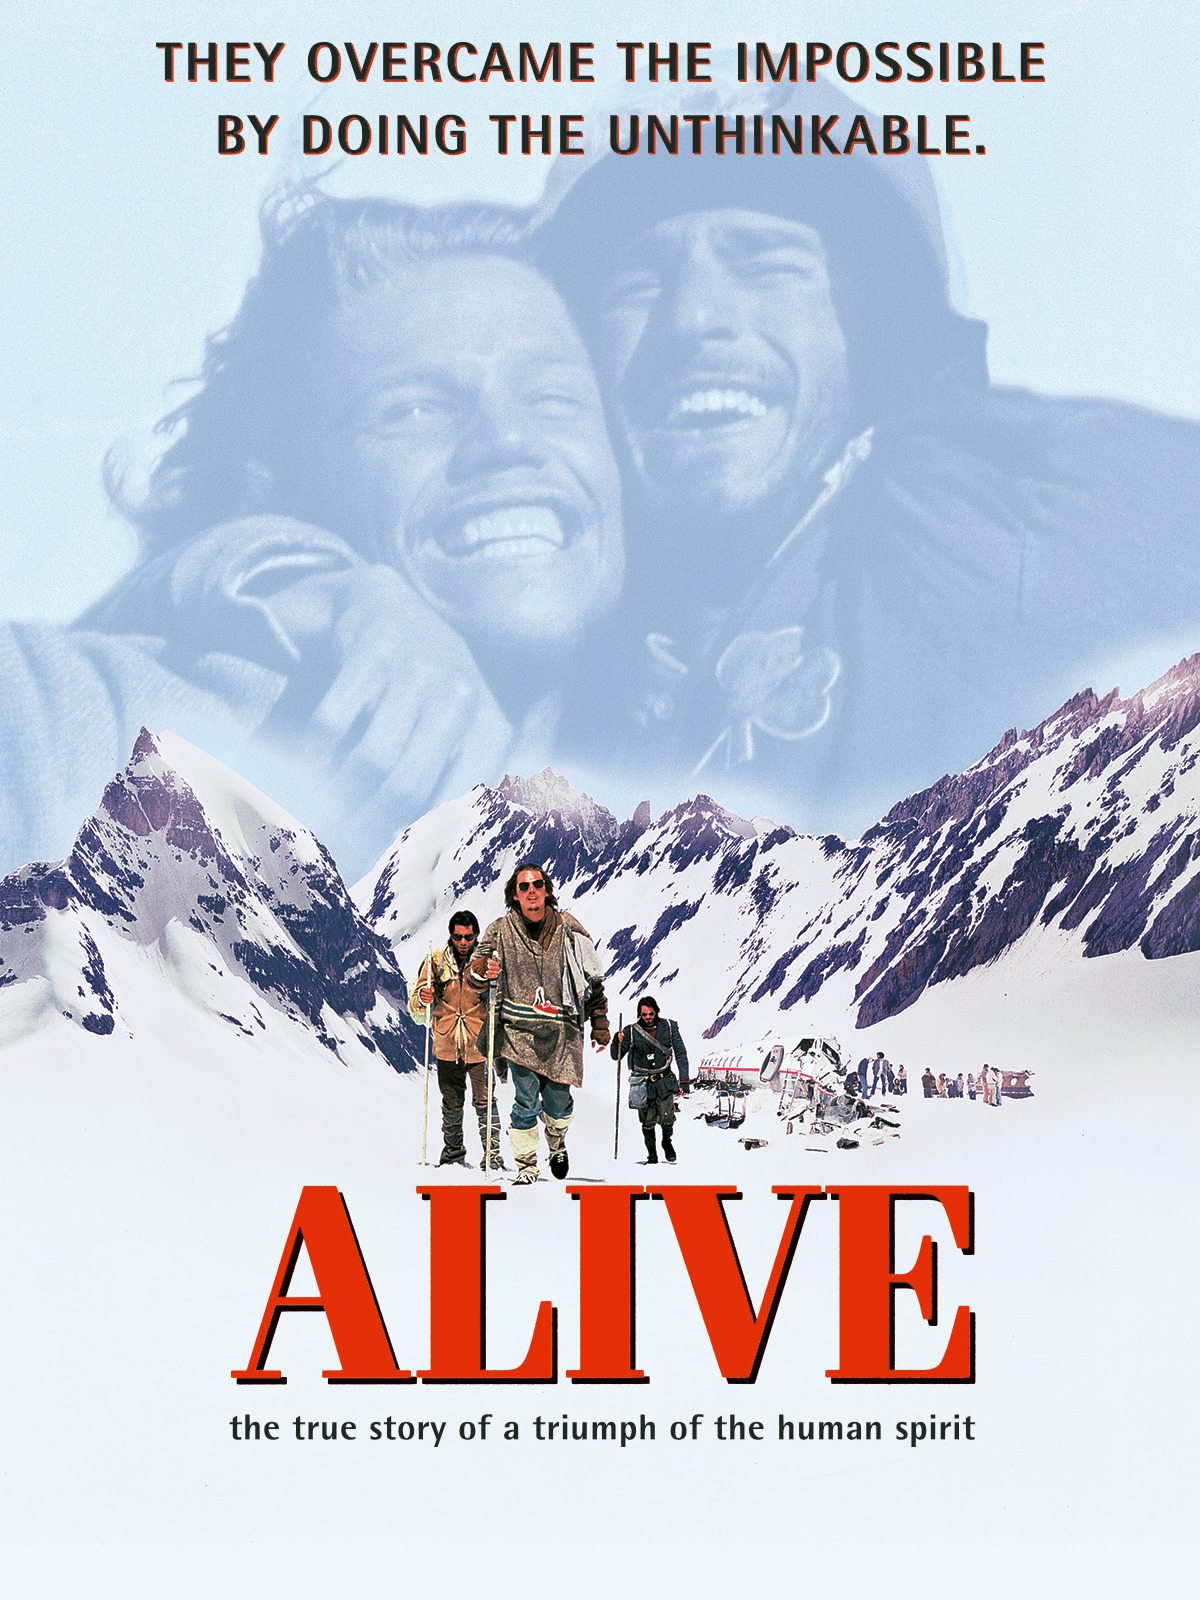 https://coresites-cdn-adm.imgix.net/mpora_new/wp-content/uploads/2015/09/The-10-Best-Survival-Movies-of-All-Time-north-face.jpg